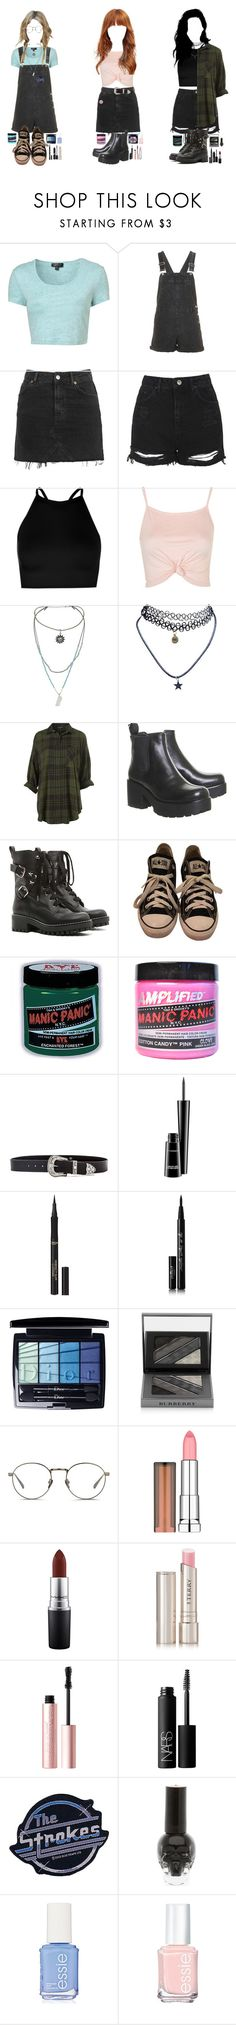 """sugar, spice, and everything nice (9/11)"" by alicemsrose ❤ liked on Polyvore featuring Topshop, Boohoo, Wet Seal, RED Valentino, Converse, Manic Panic NYC, B-Low the Belt, MAC Cosmetics, L'Oréal Paris and Eyeko"